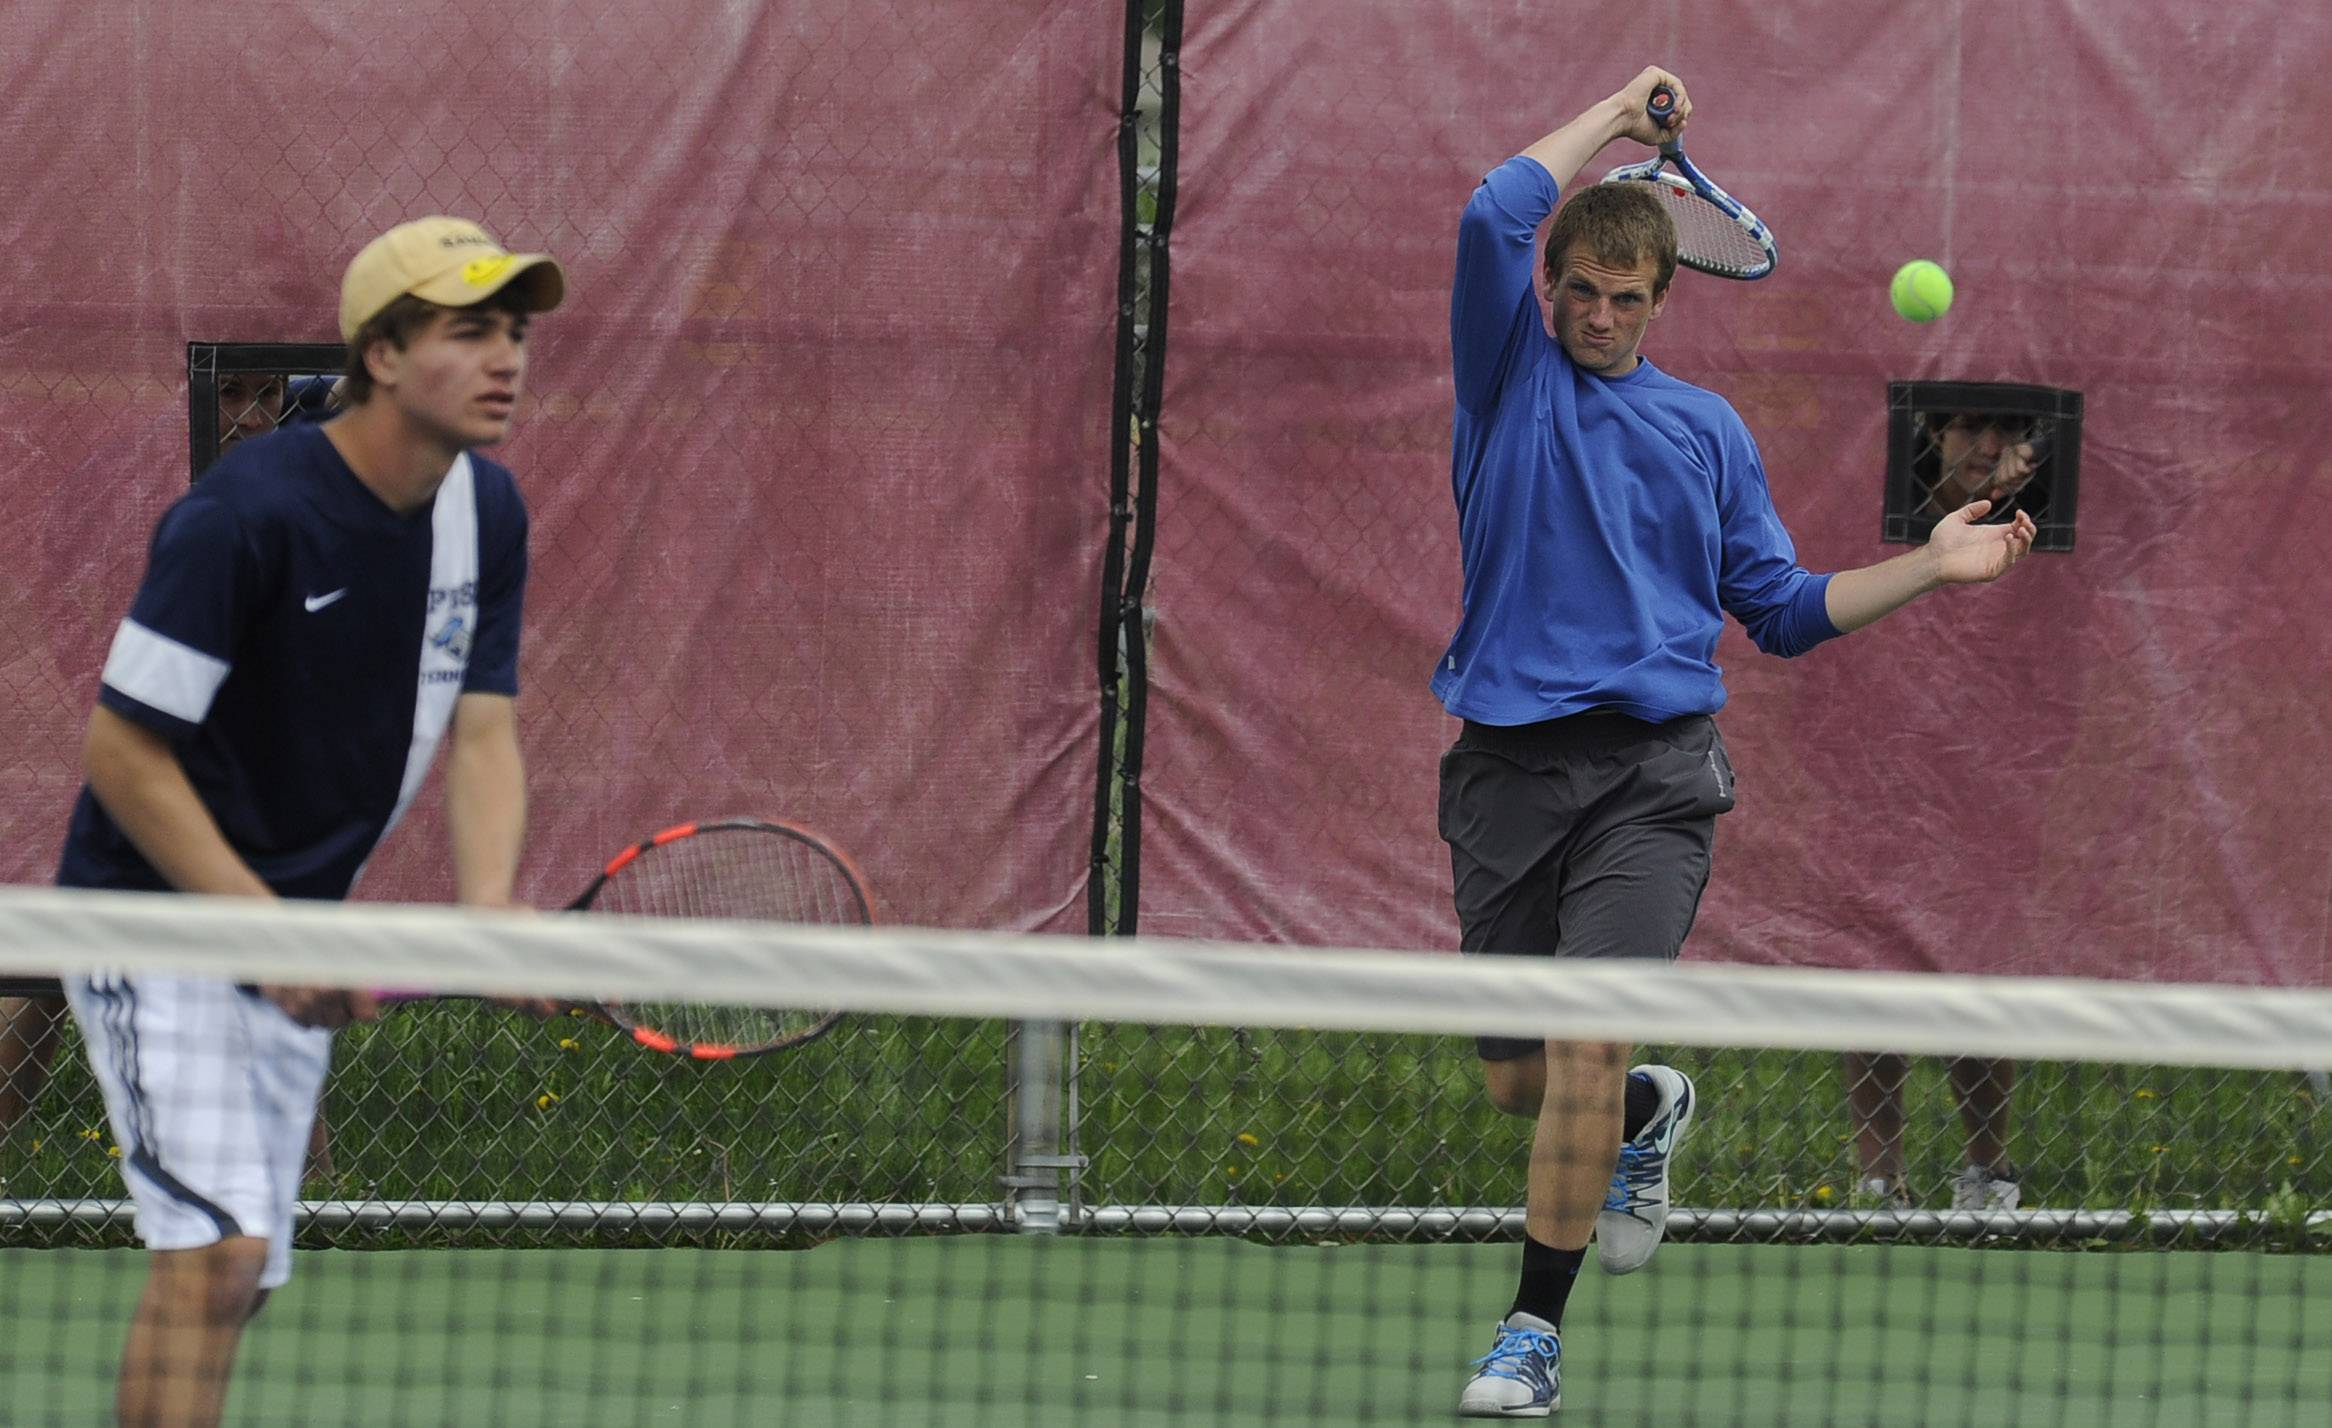 Prospect's Sam Tambeaux returns a smash as his doubles partner Ralph Tenuta looks on during Saturday's Mid-Suburban League touranment at Schaumburg.